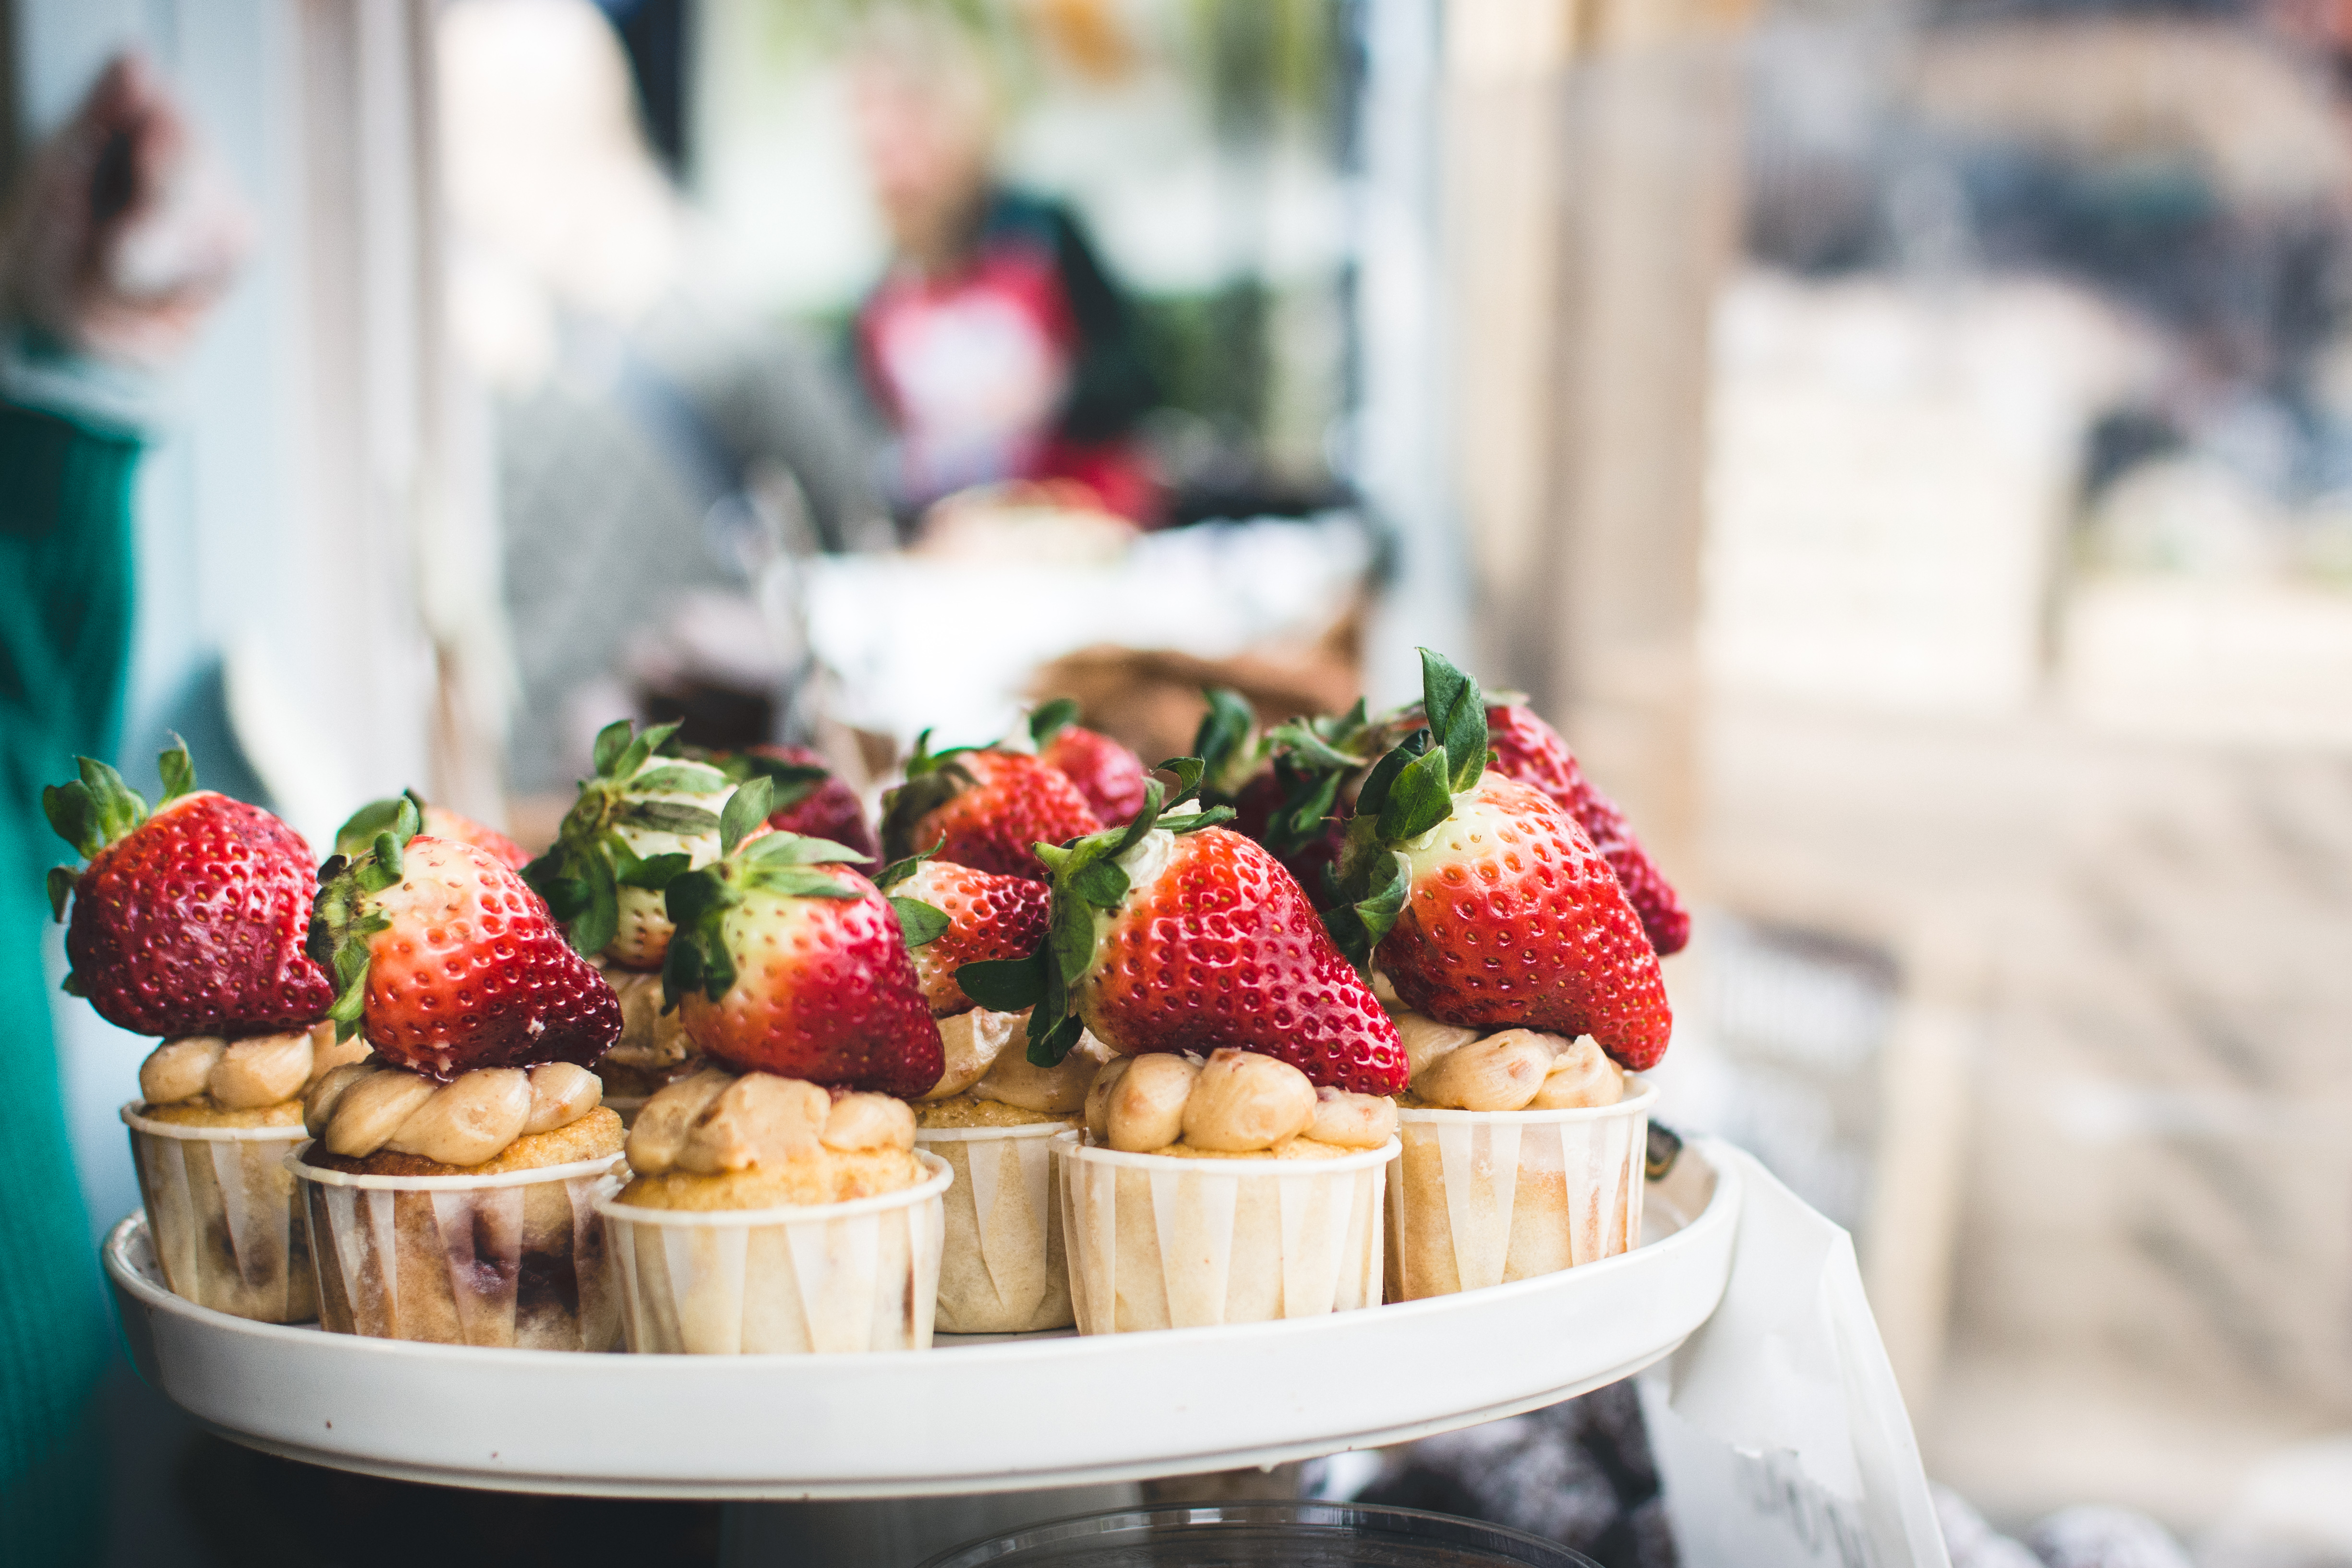 Cupcakes with strawberries on top